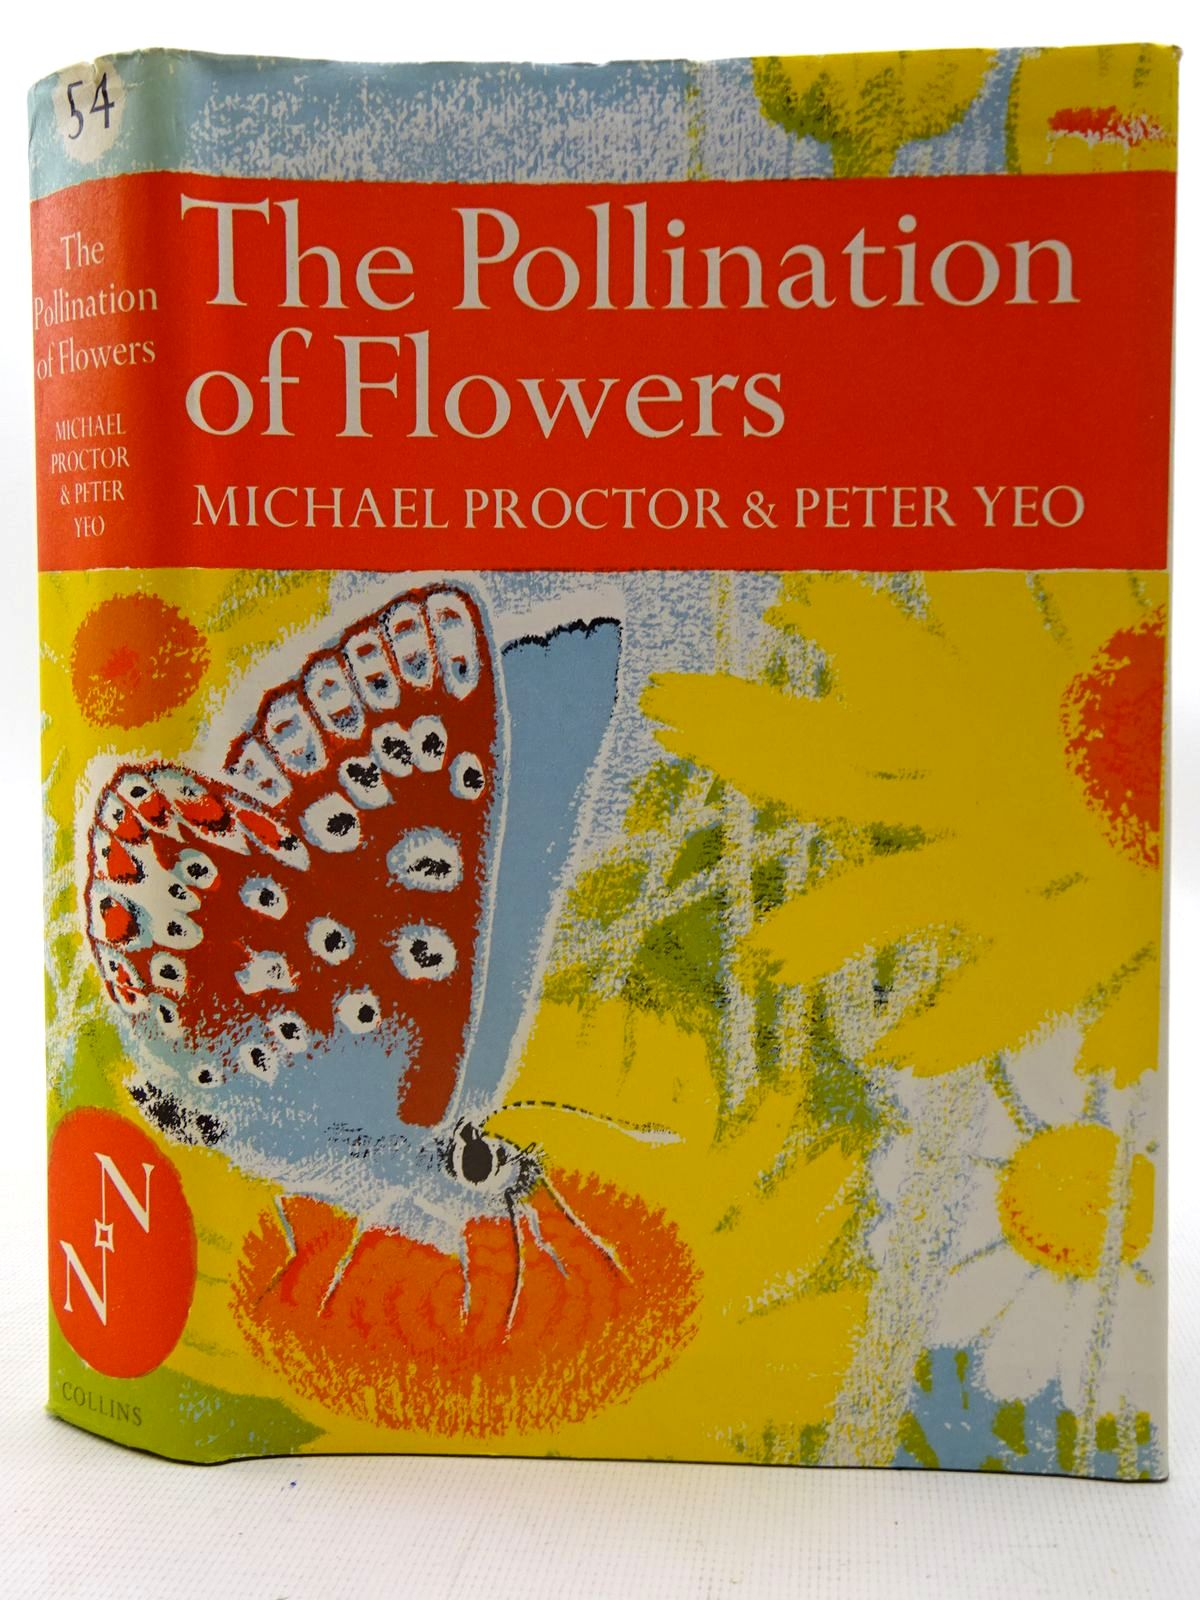 Photo of THE POLLINATION OF FLOWERS (NN 54)